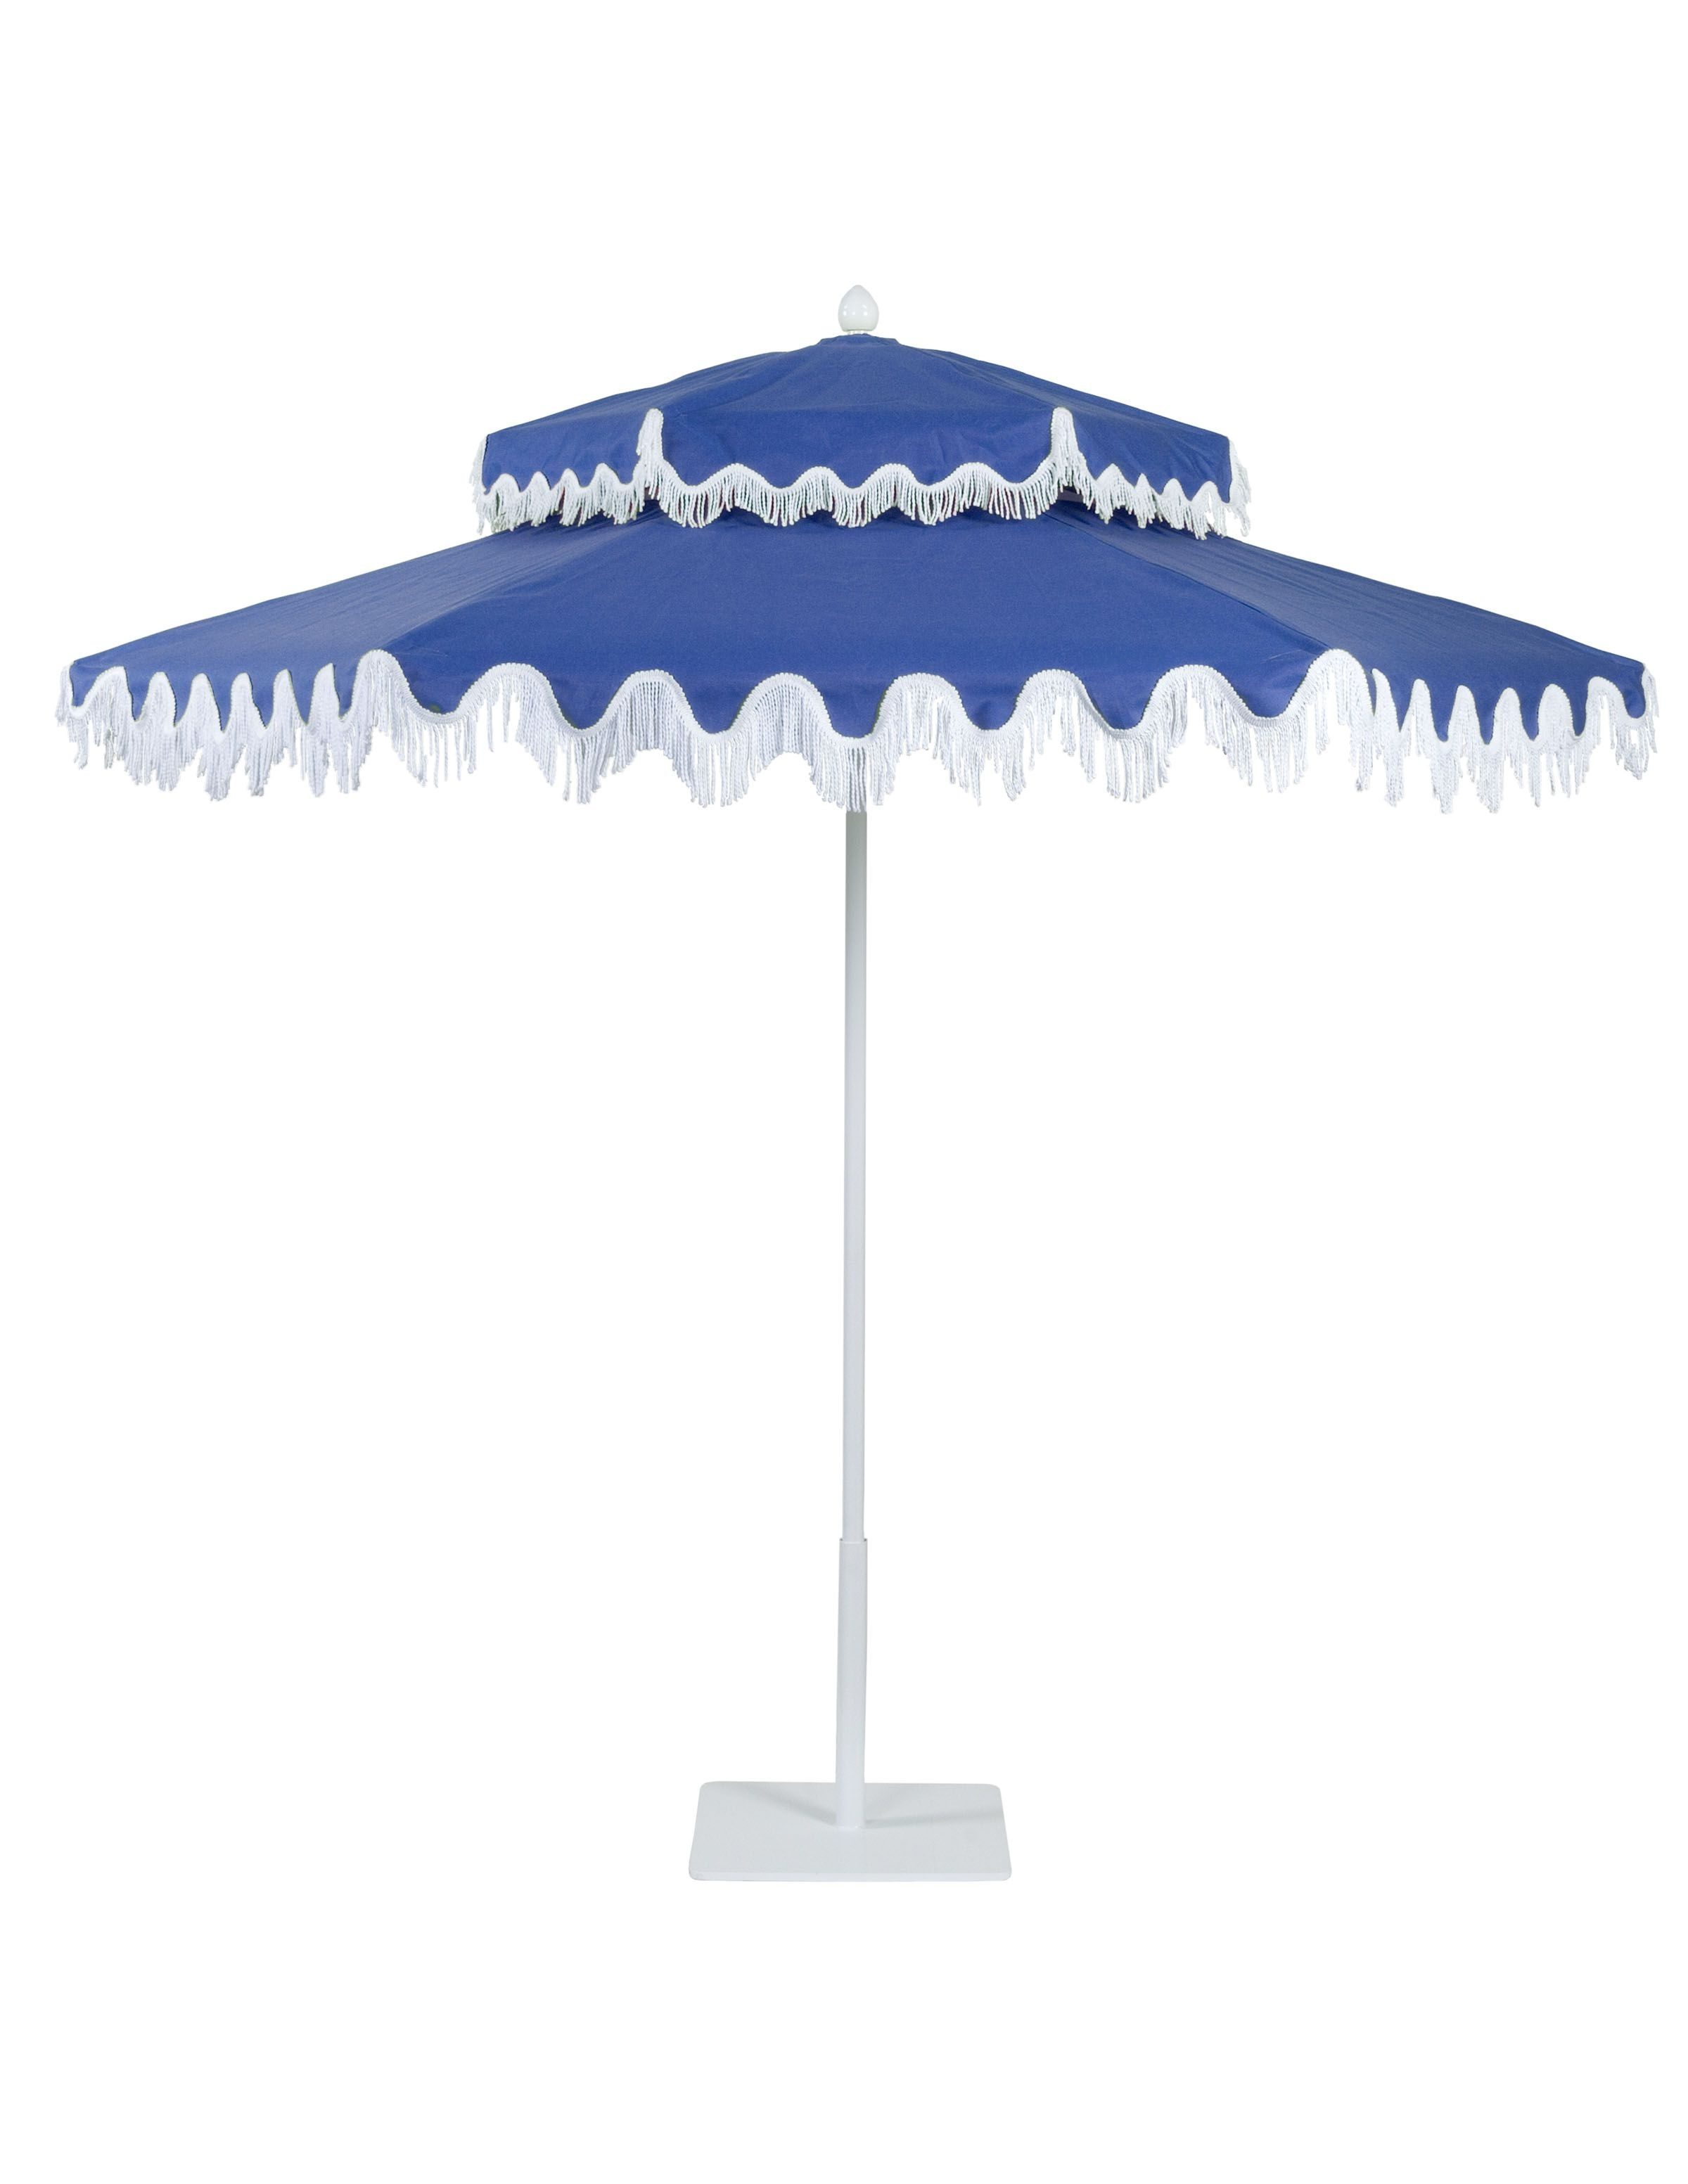 Double Decker Aluminum Umbrella With White Frame In Anchor Blue Pertaining To Latest Patio Umbrellas With Fringe (View 4 of 20)